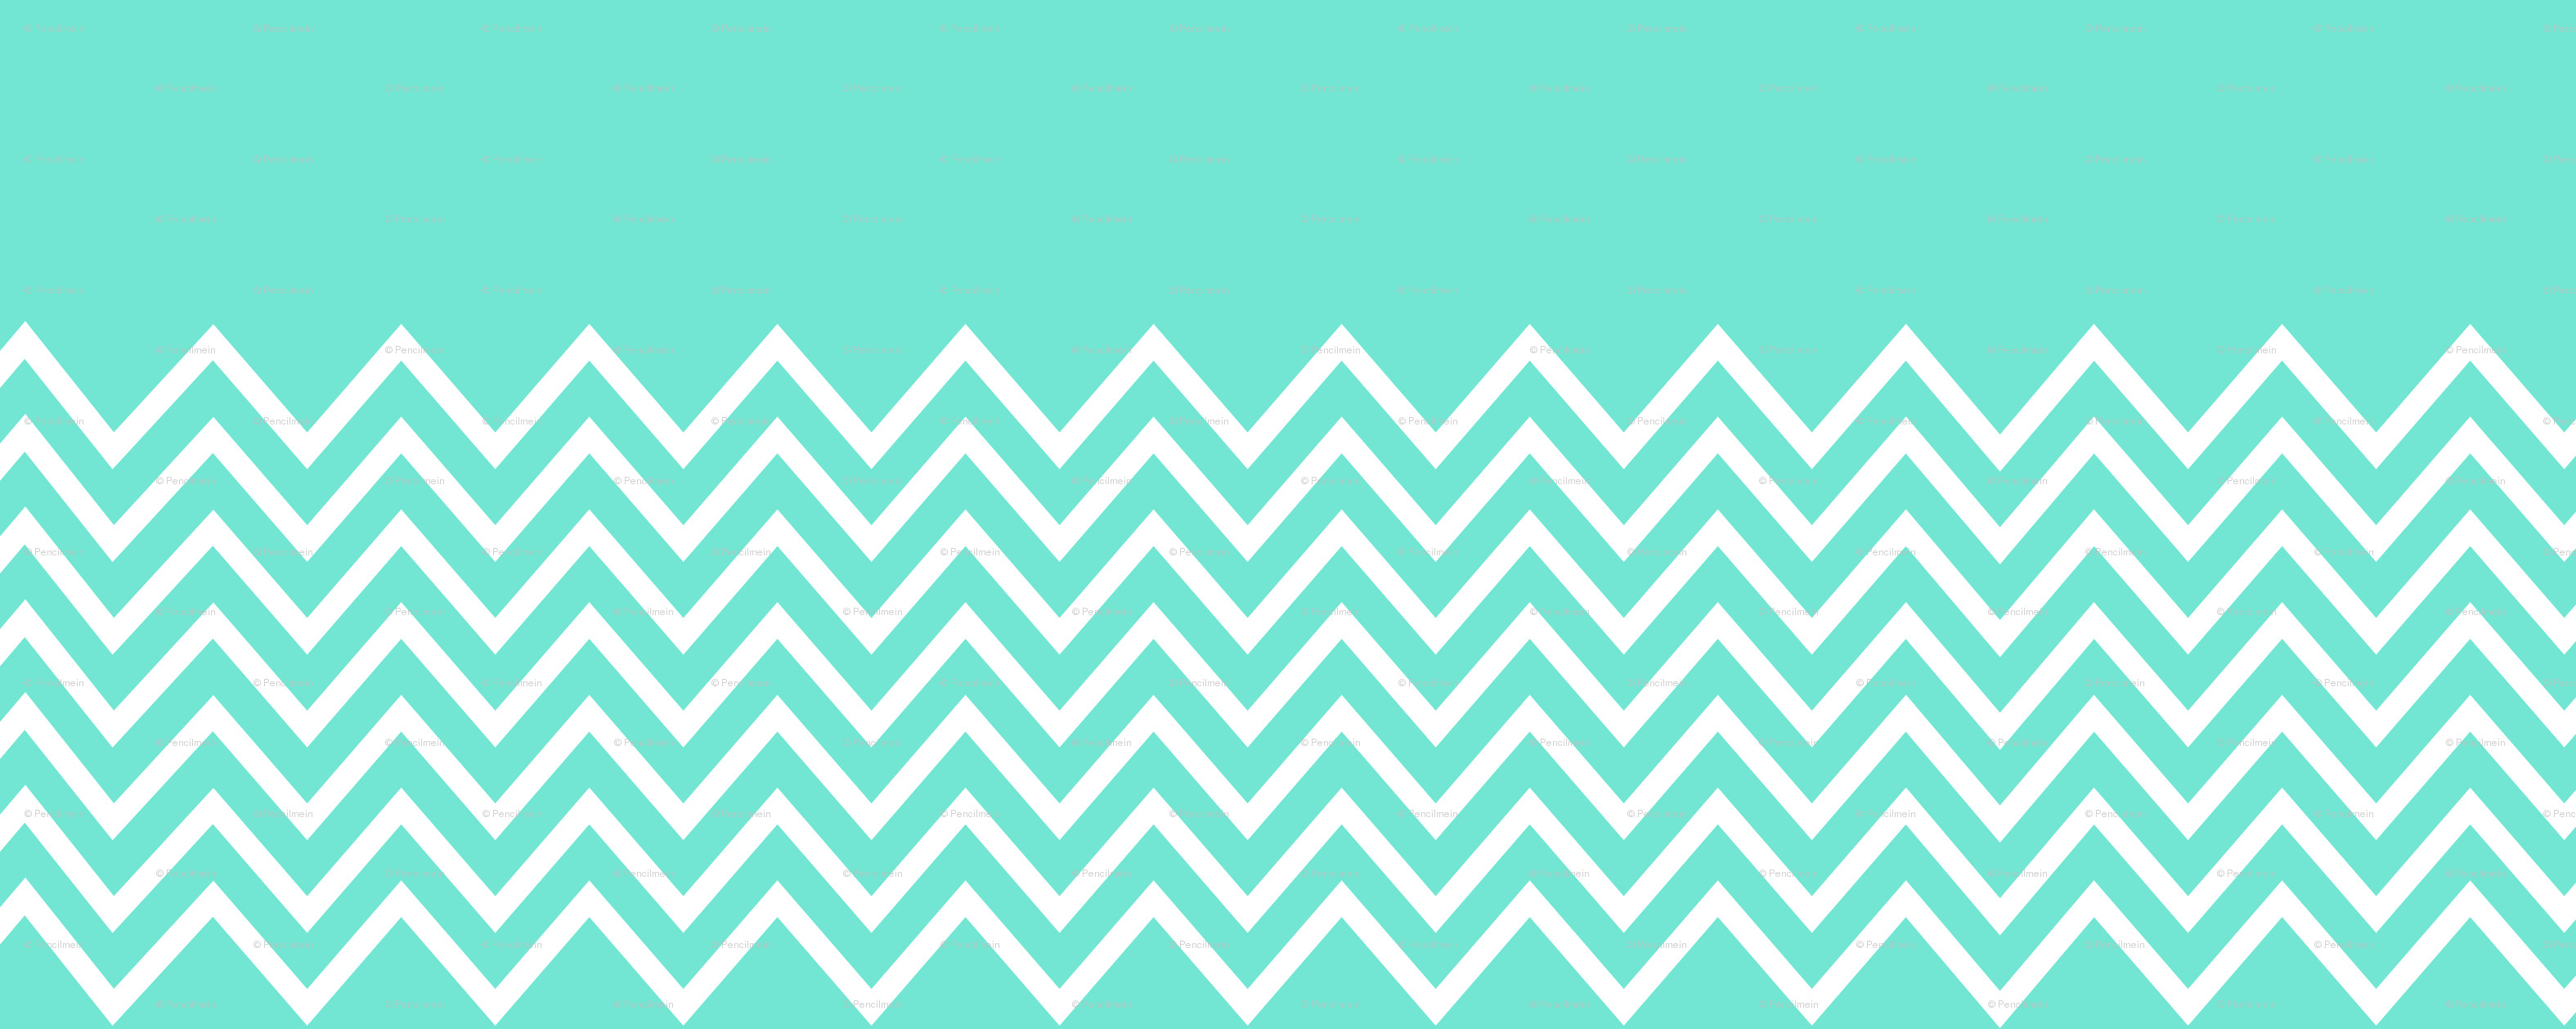 3150x1258 Green Chevron Computer Wallpaper Green chevron …